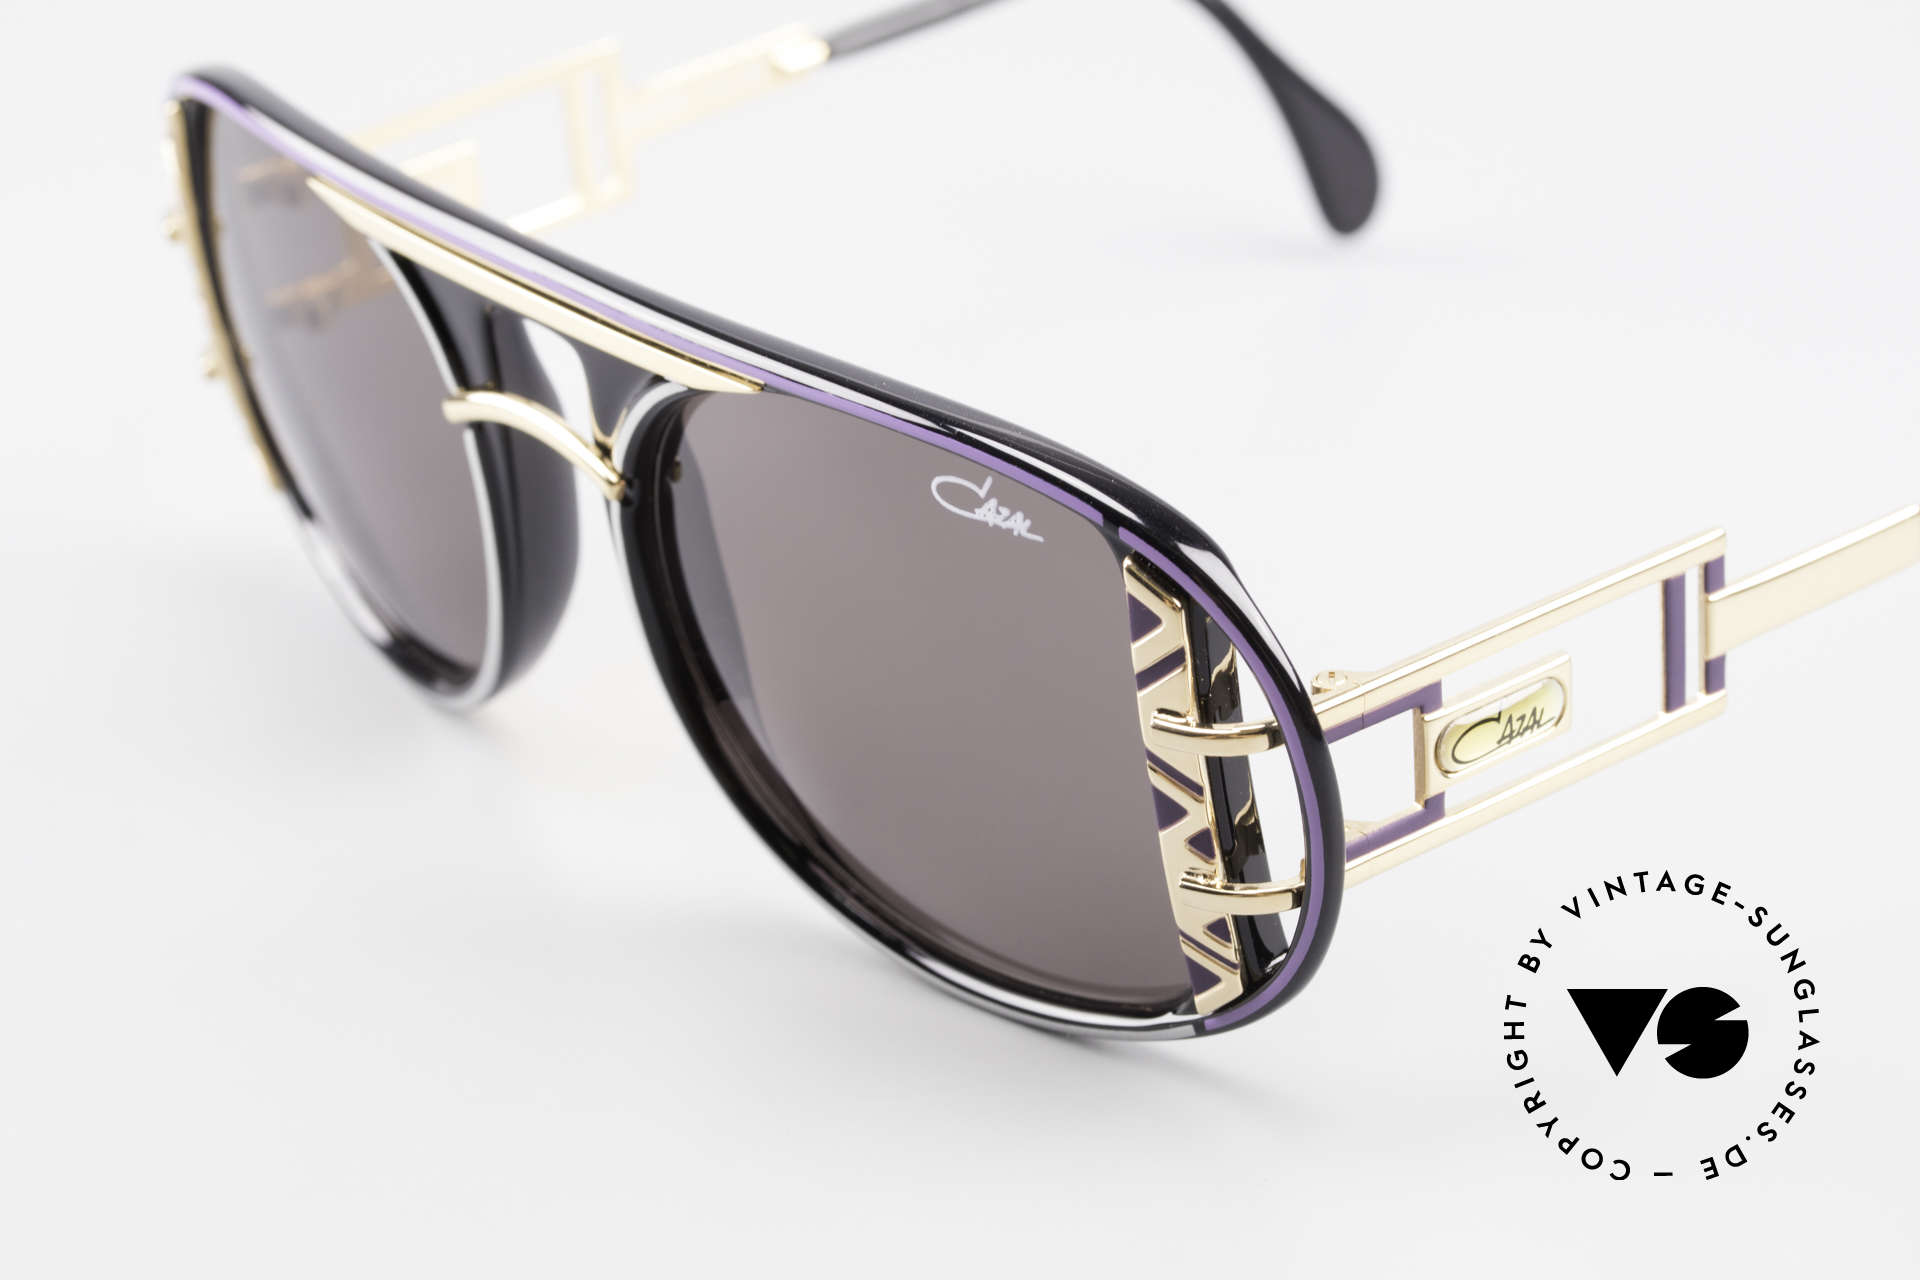 Cazal 875 Extraordinary Sunglasses 90's, a true eye-catcher (made for ladies & gentlemen), Made for Men and Women